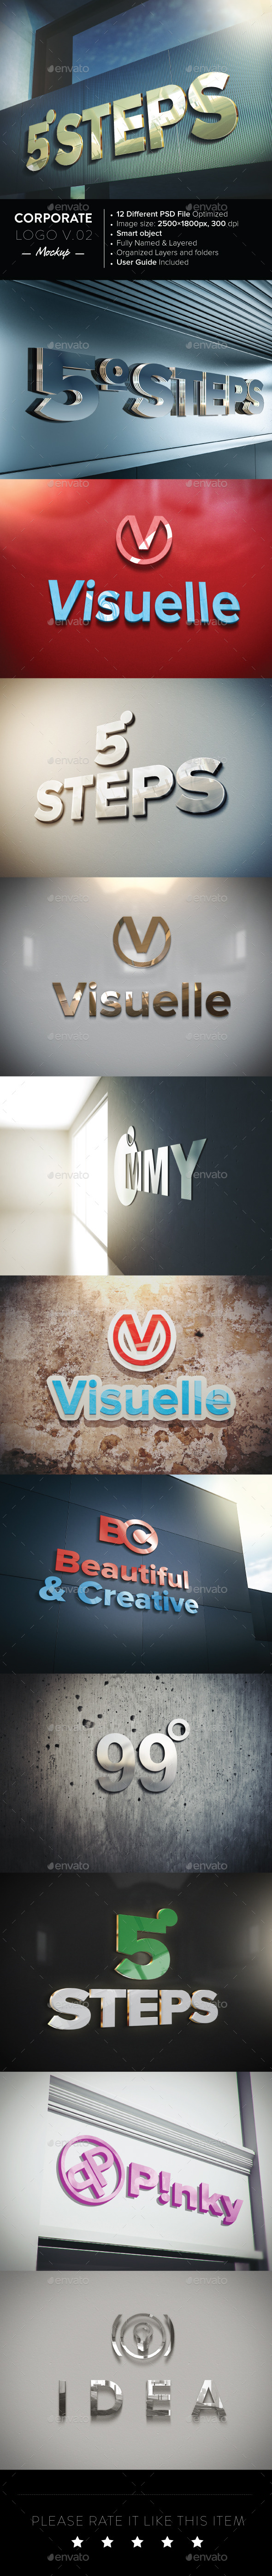 GraphicRiver Corporate Logo Mockup V.0.2 10450838